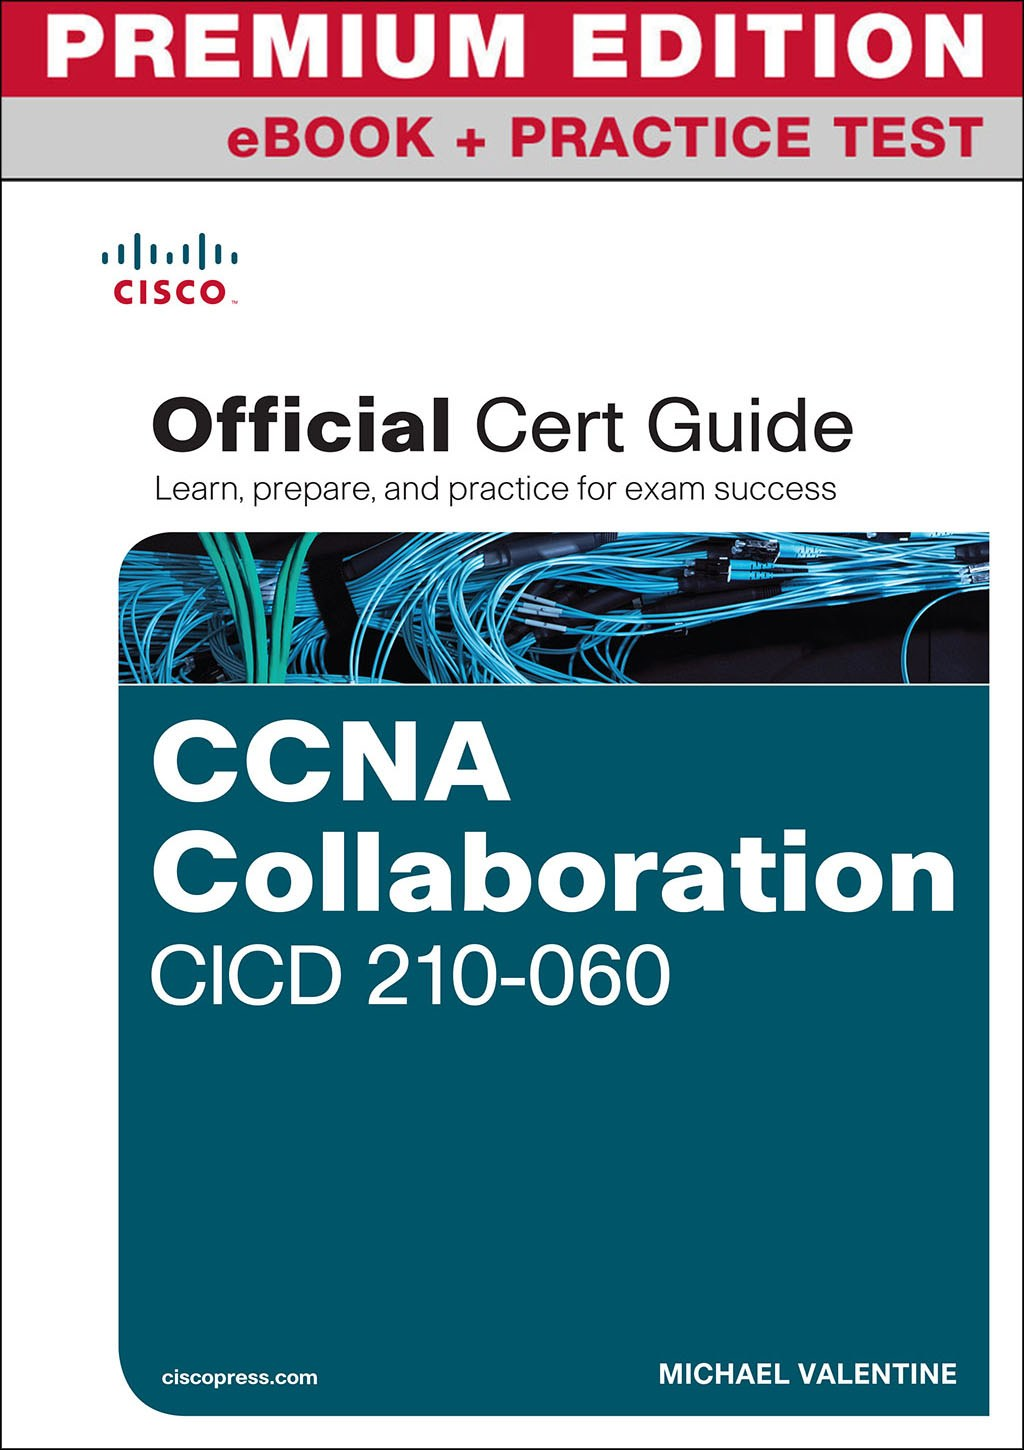 CCNA Collaboration CICD 210-060 Official Cert Guide Premium Edition and Practice Test